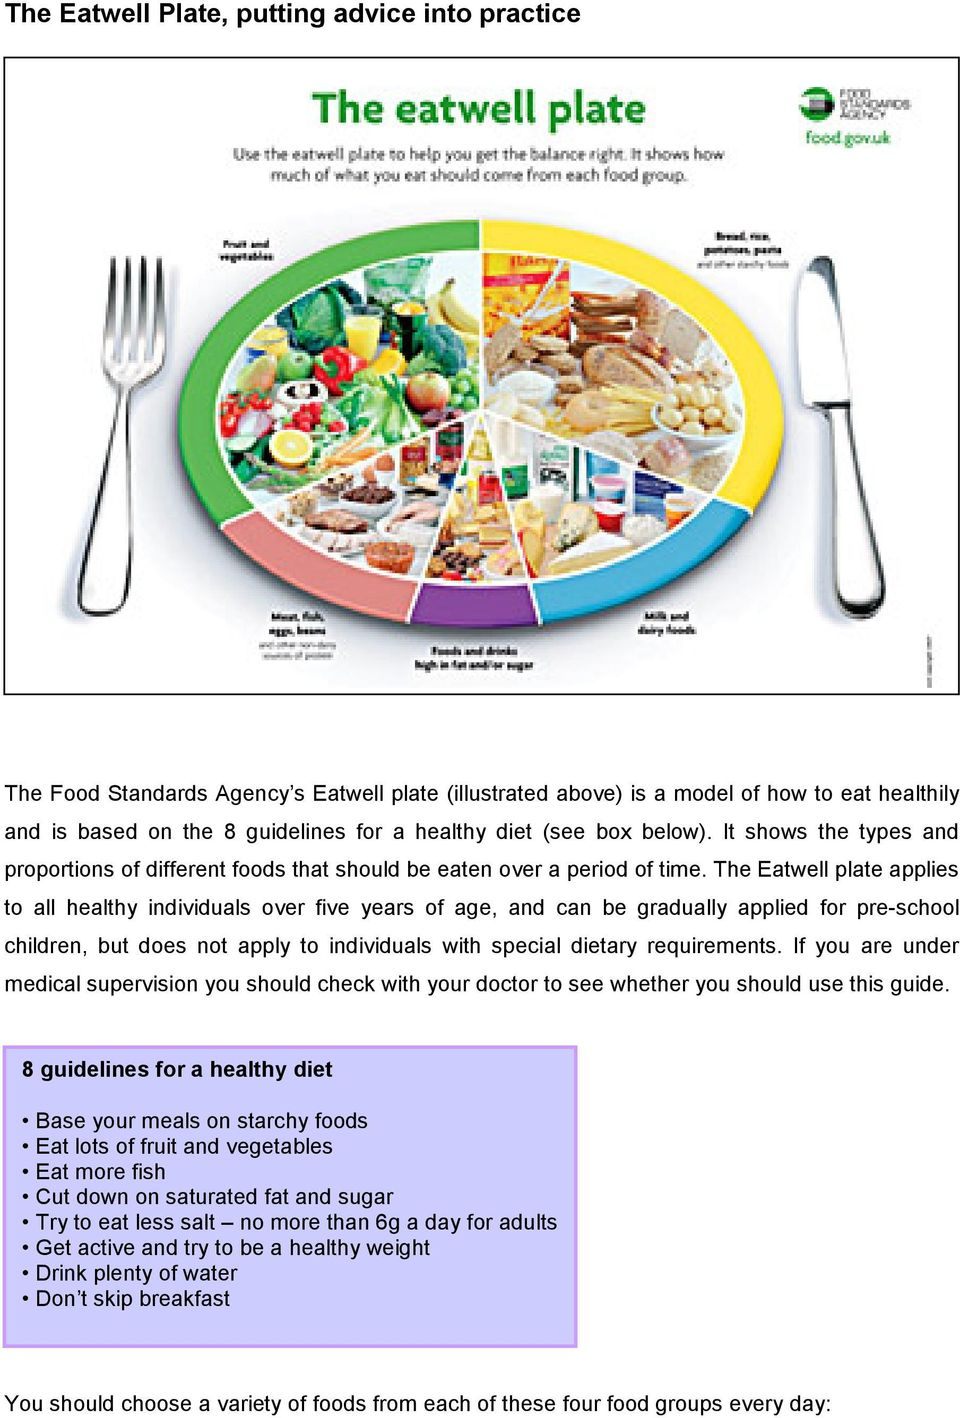 The Eatwell plate applies to all healthy individuals over five years of age, and can be gradually applied for pre-school children, but does not apply to individuals with special dietary requirements.